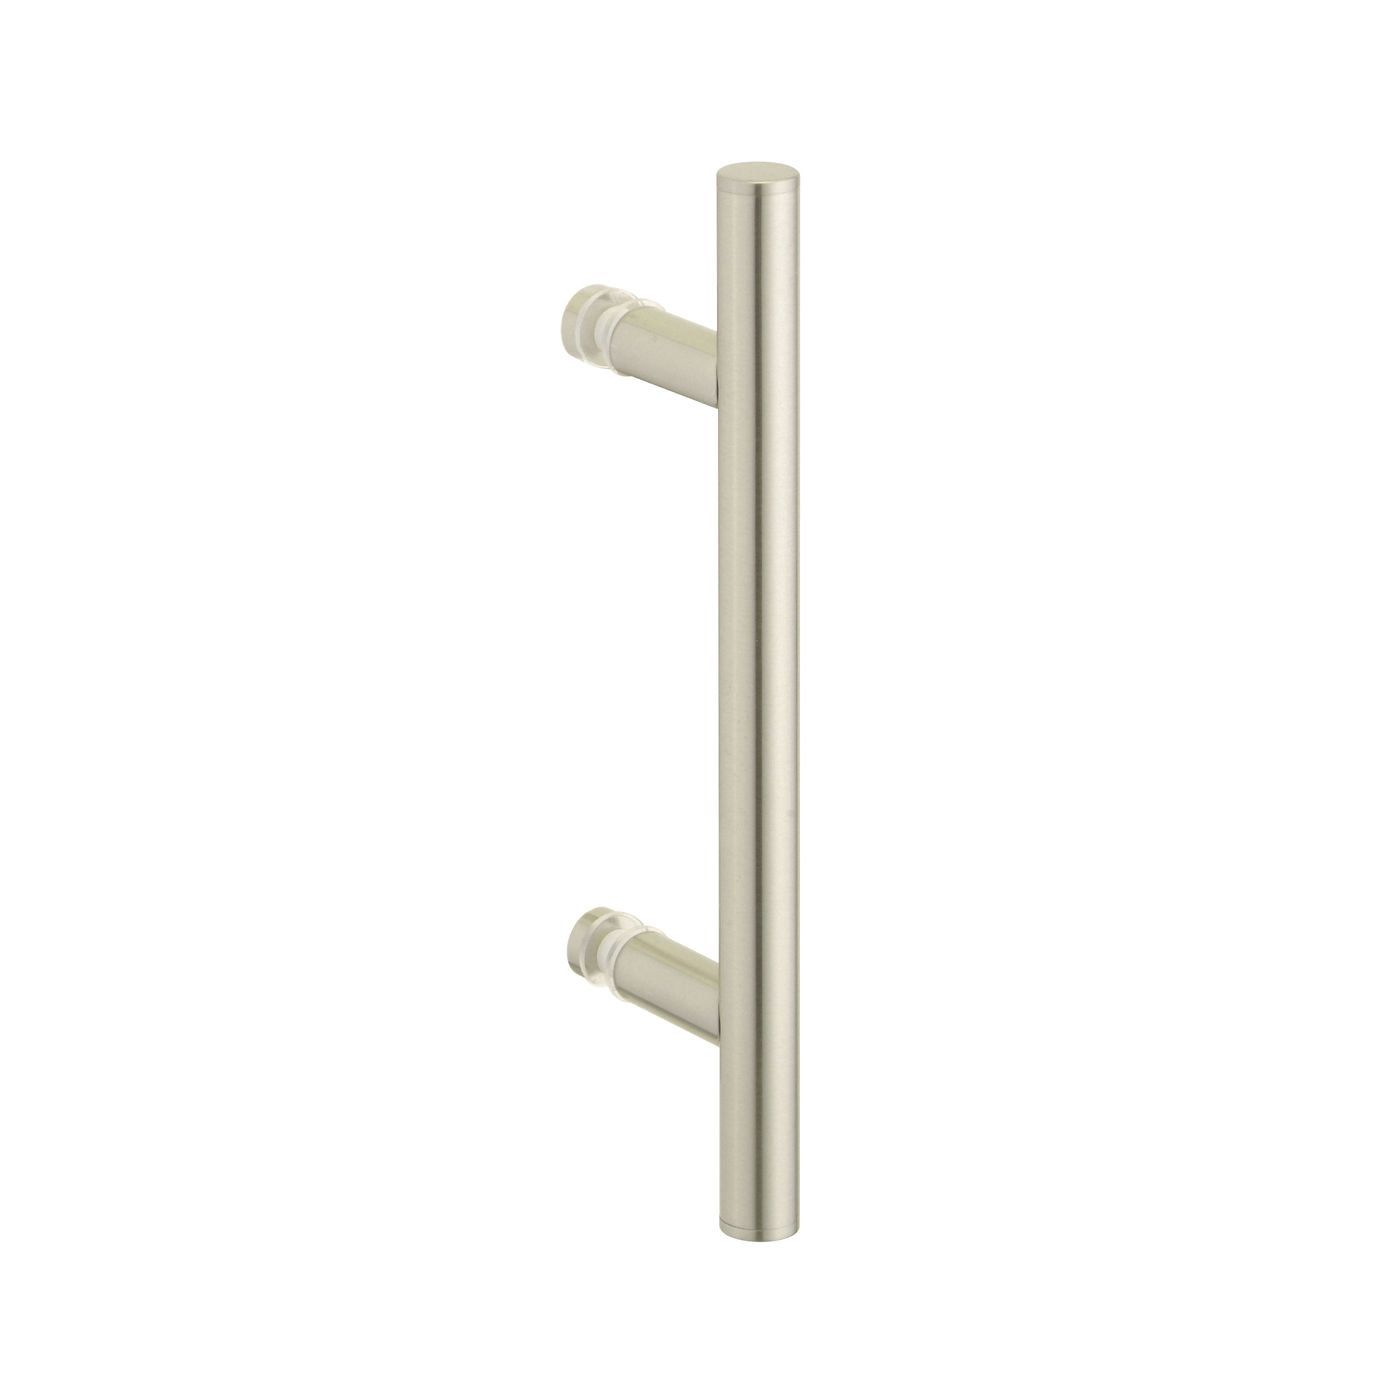 Portals Shower Door Hardware 1500 Trend Home Design 1500 Trend